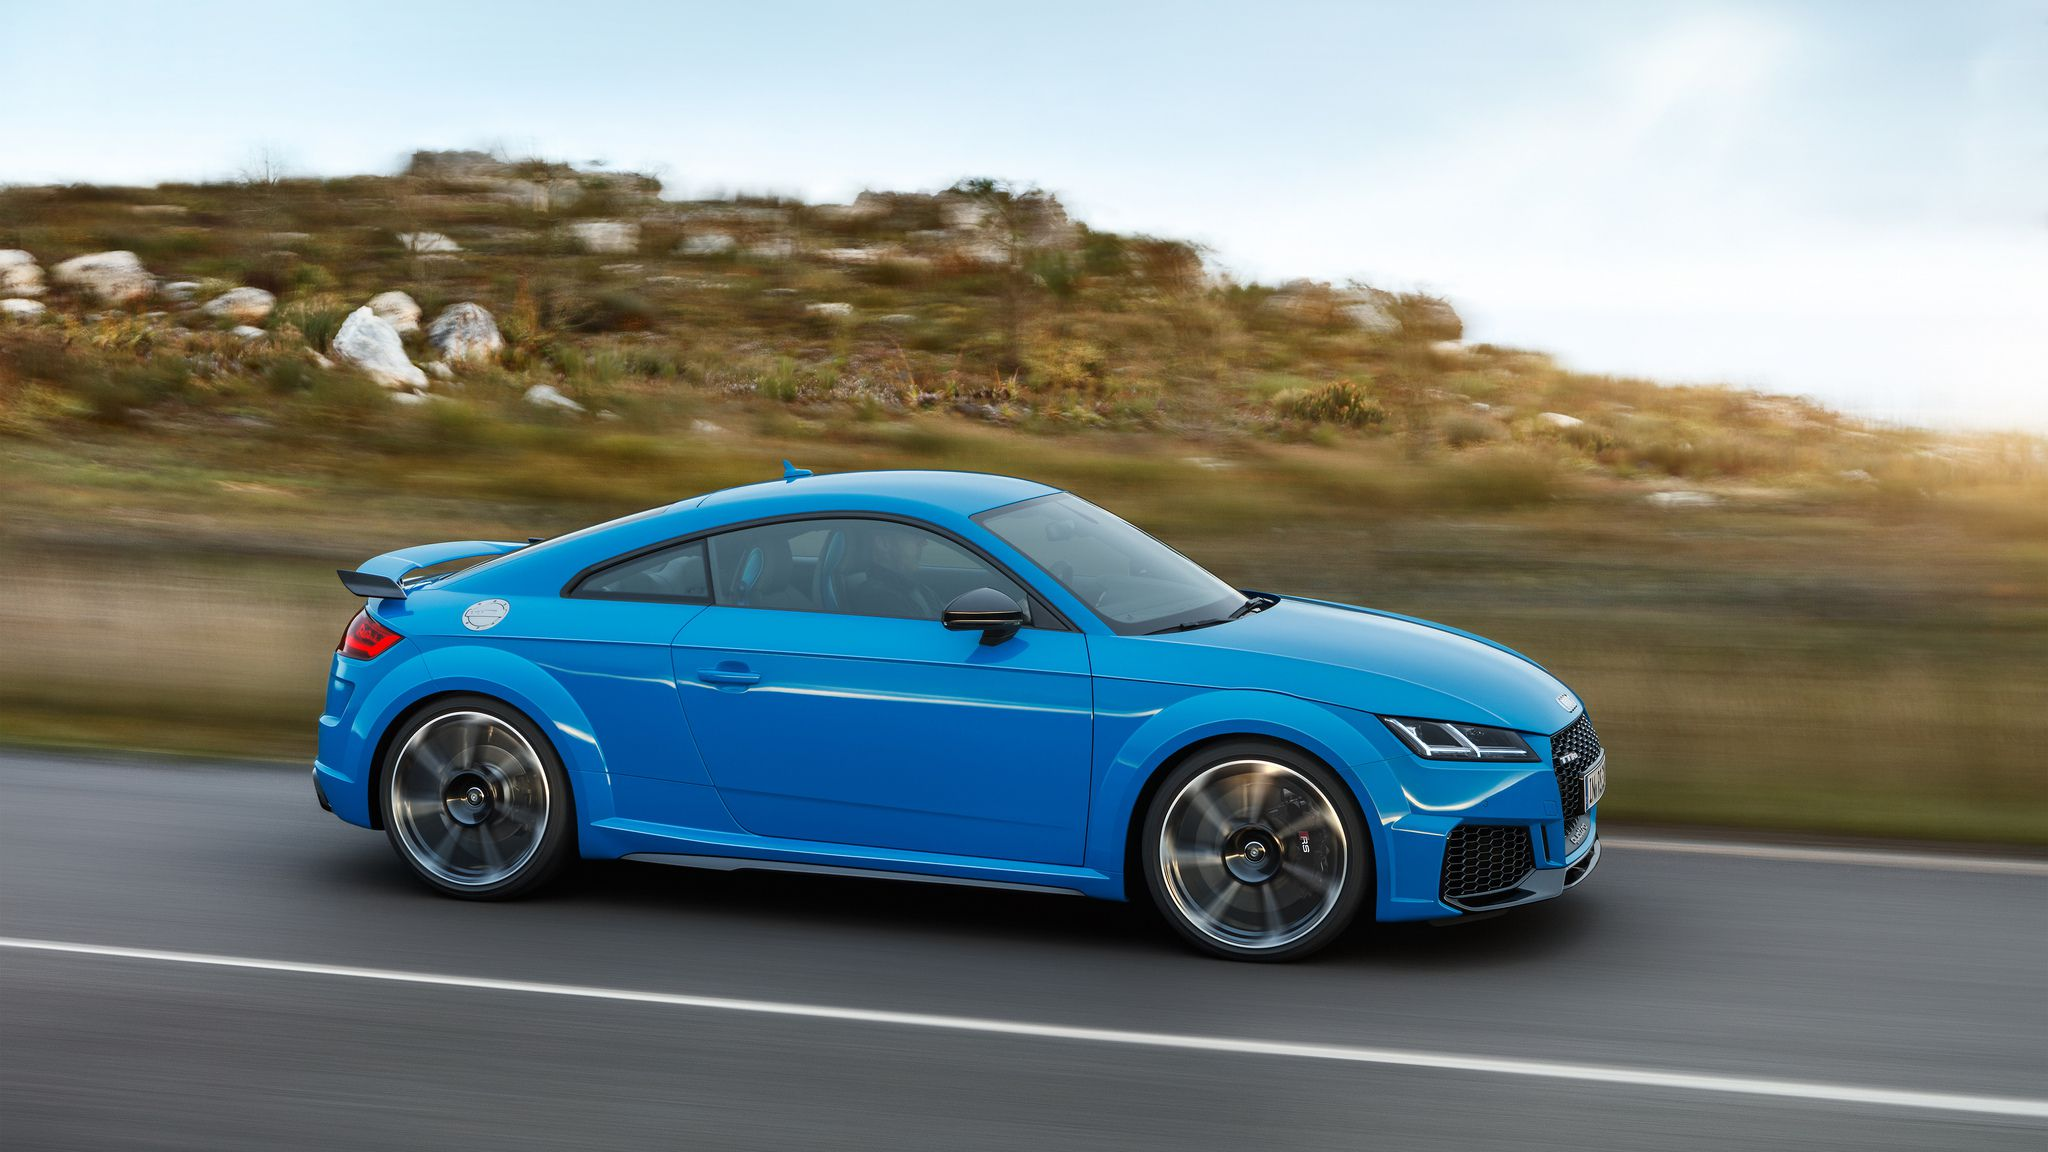 TT RS Coupé - side view, in motion